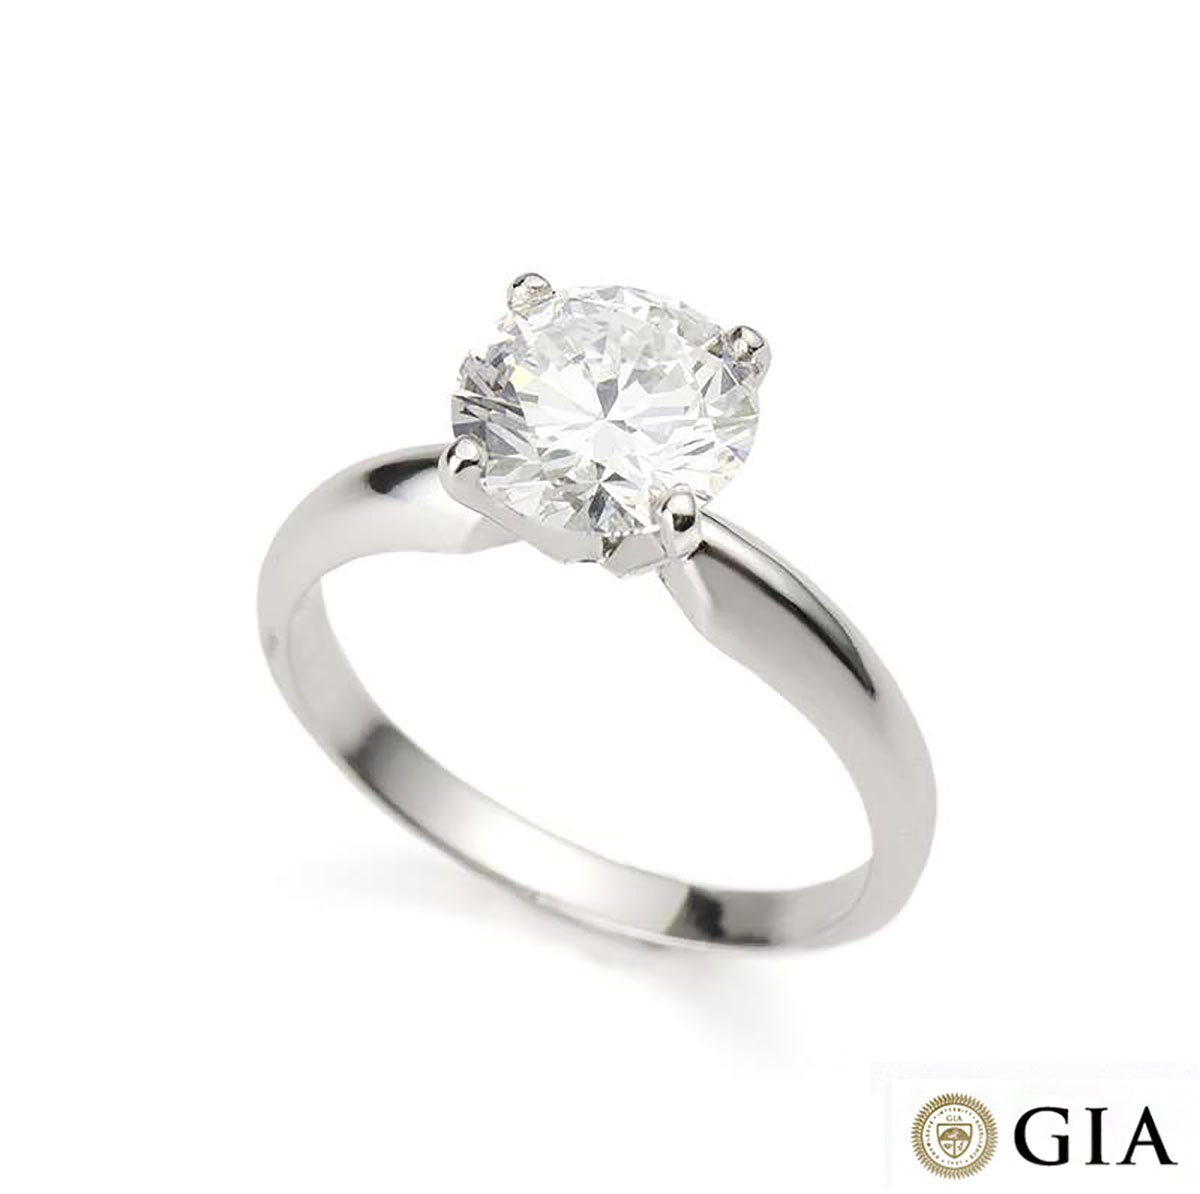 Round Brilliant Cut Diamond Ring in Platinum 1.55ct D/VVS2